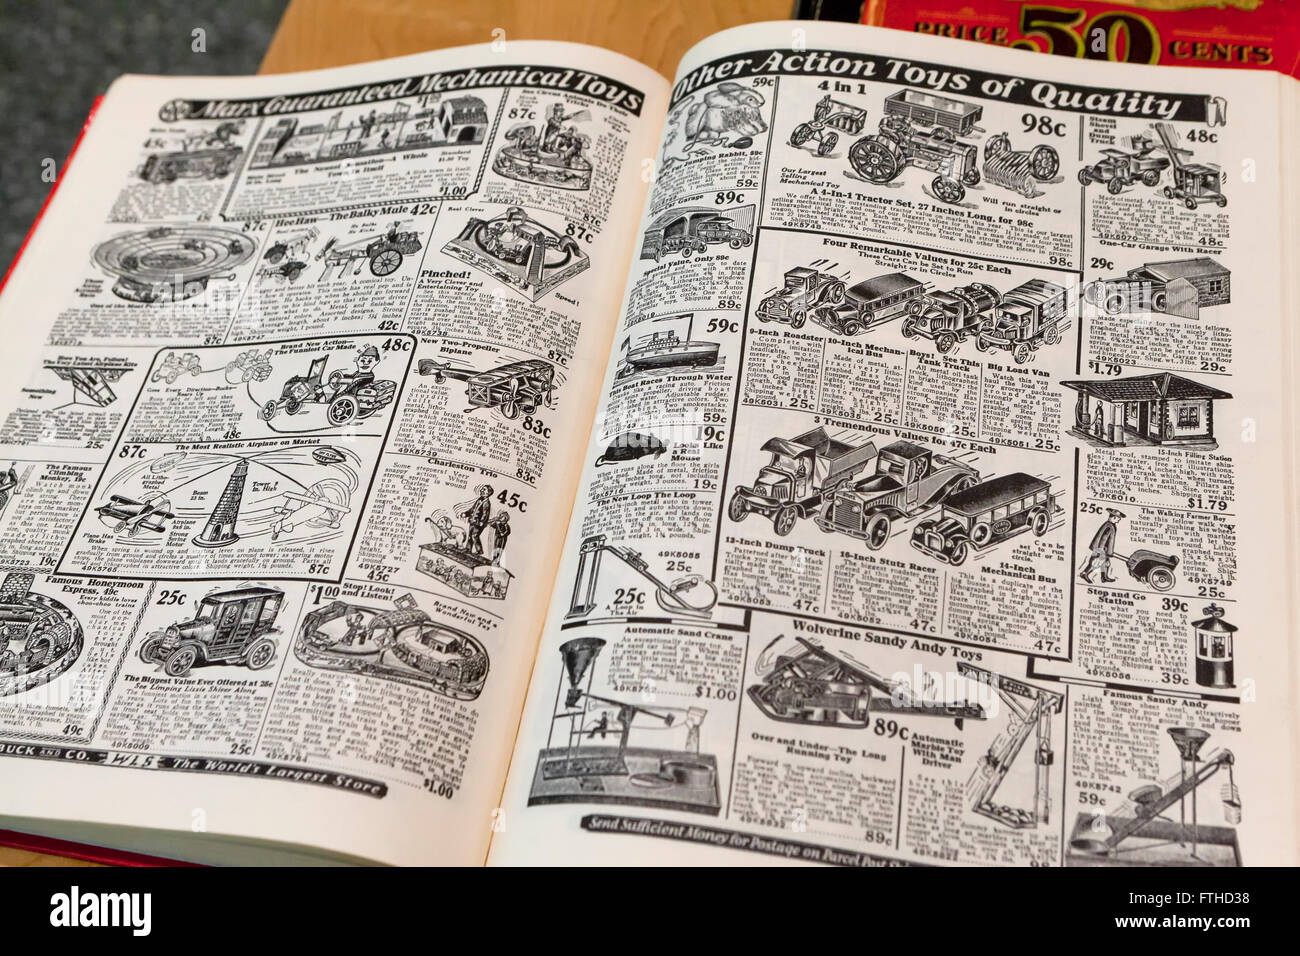 Sears Toys For Boys : Boys toys pages from sears roebuck catalogue book